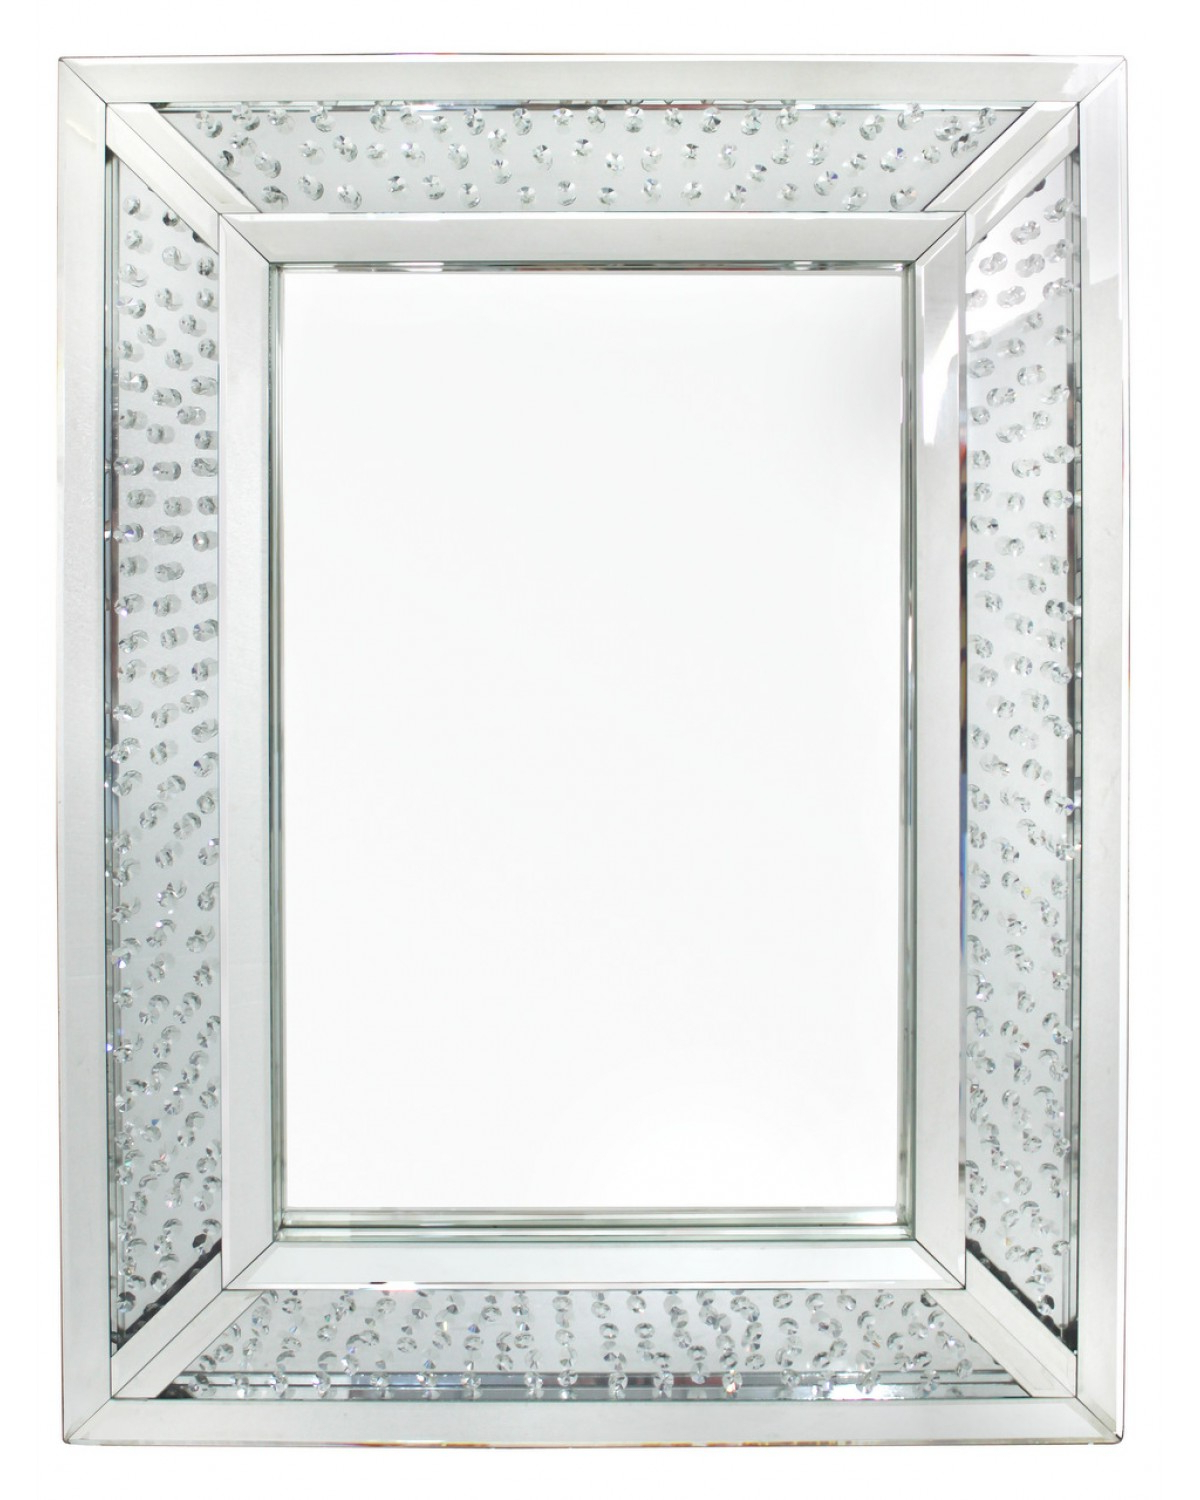 Newest Wall Mirrors With Crystals Intended For Crystal Wall Mirror – Pmpresssecretariat (View 8 of 20)